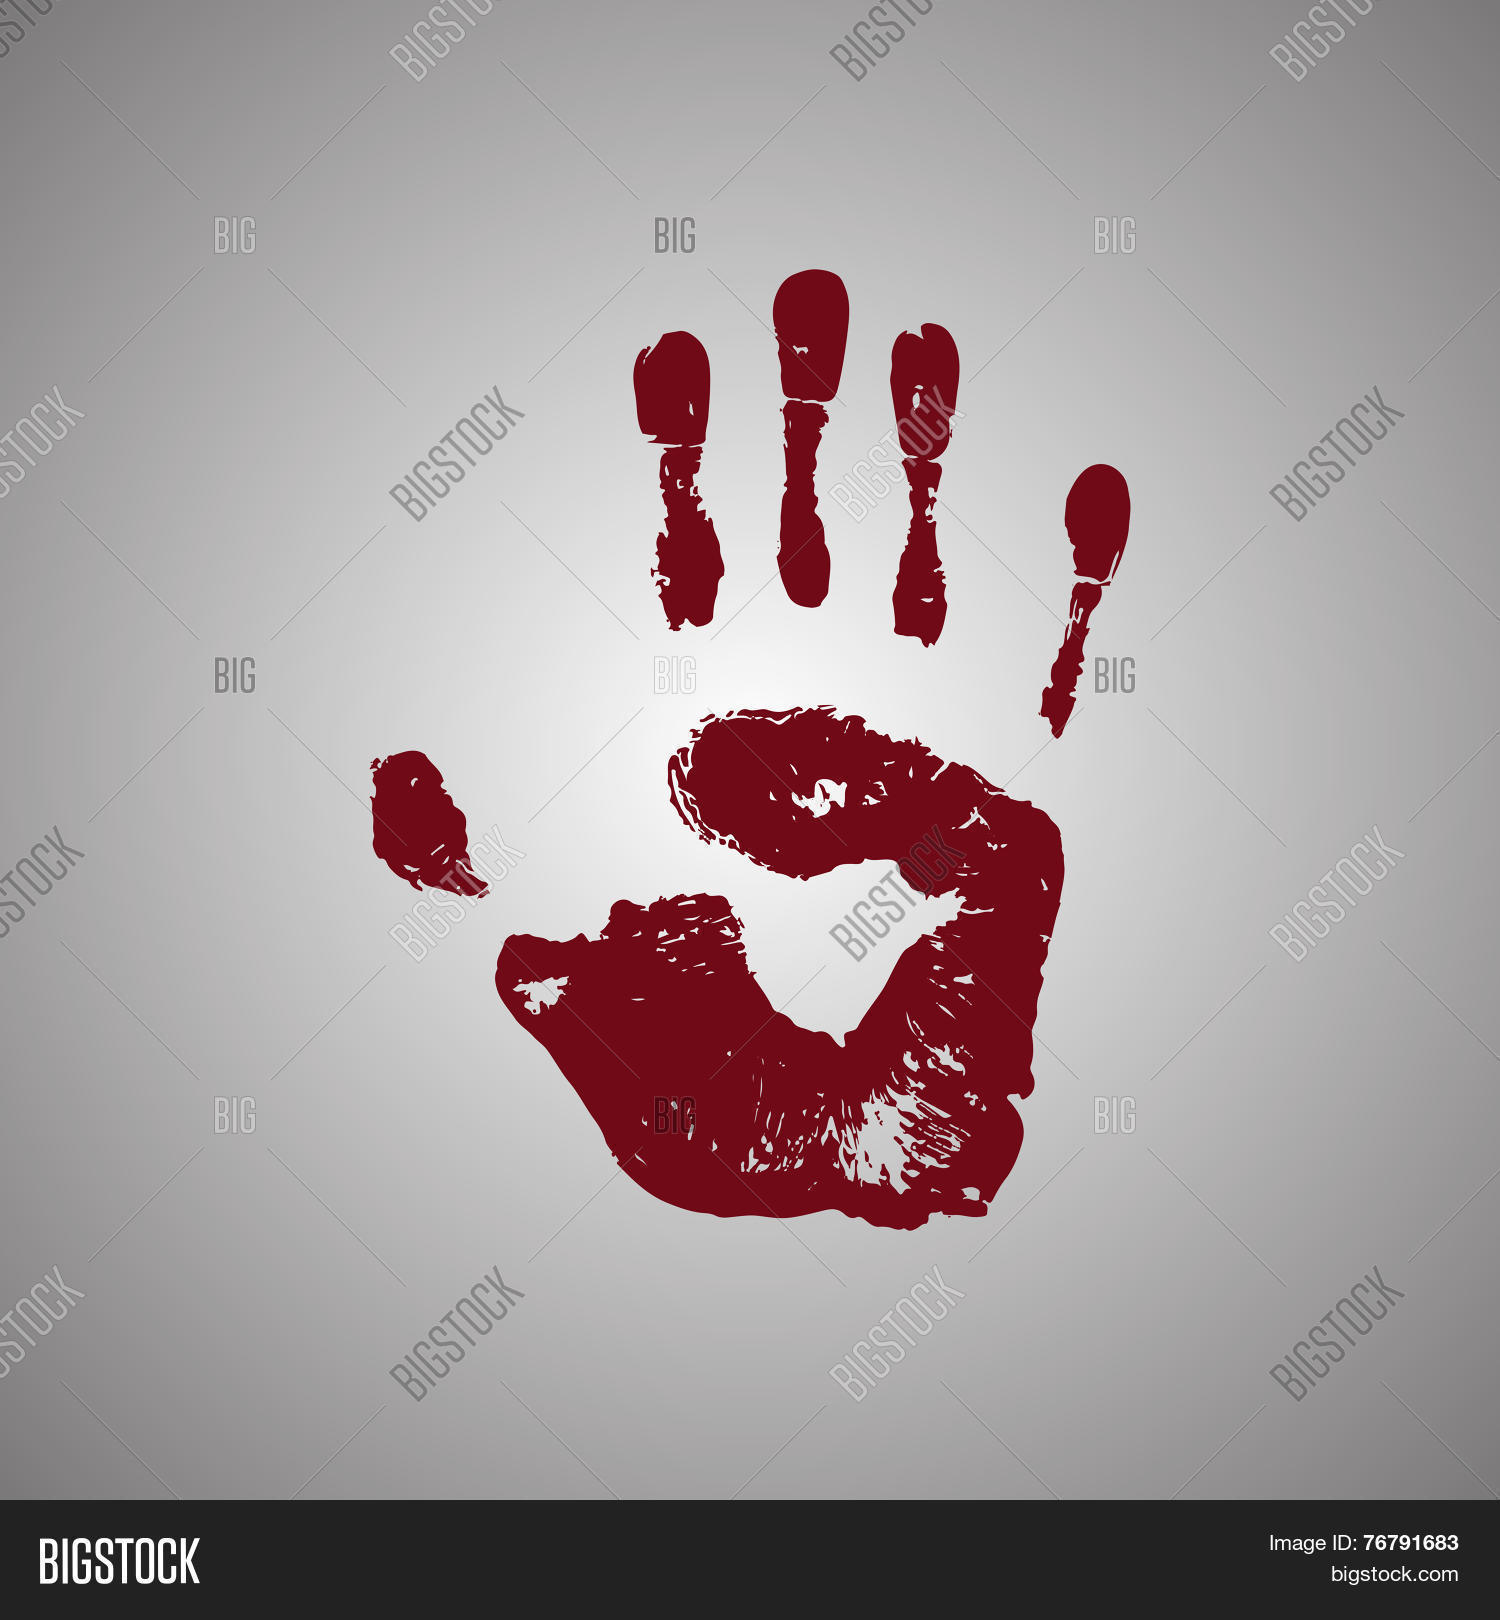 Bloody Handprint Vector & Photo (Free Trial) | Bigstock